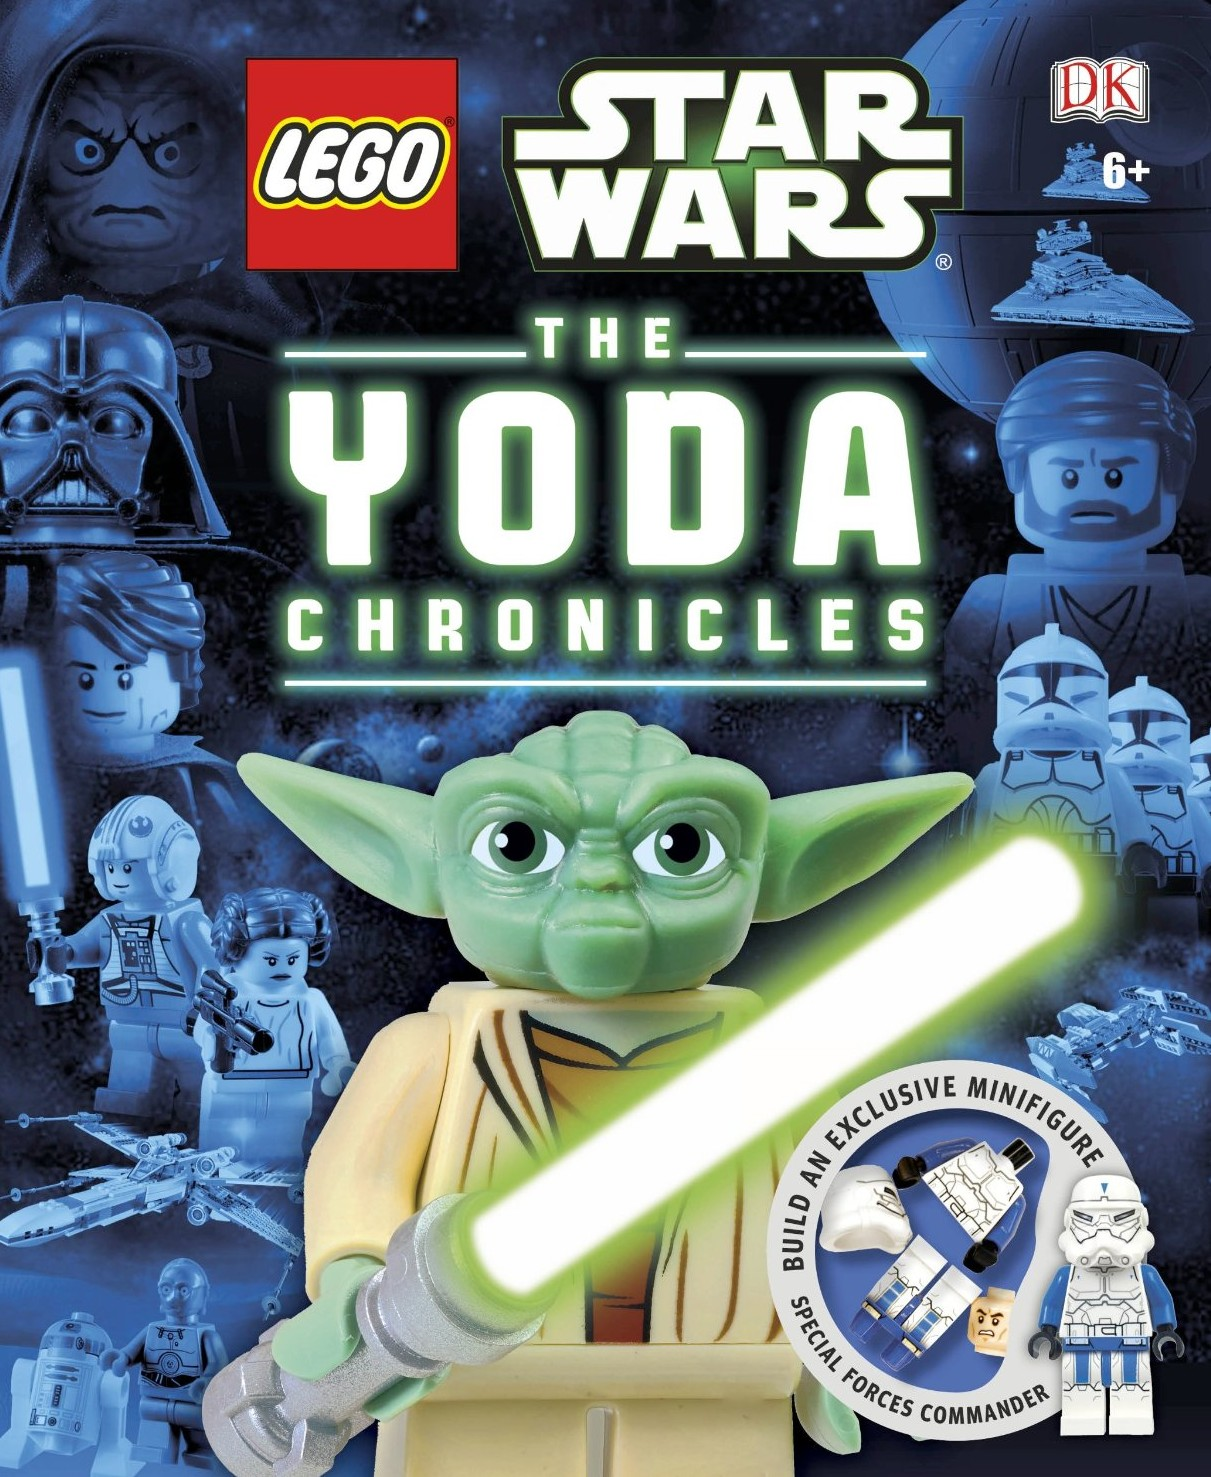 Lego Special Forces Commander Yoda Chronicle Exclusive Book Star Wars Minifigure